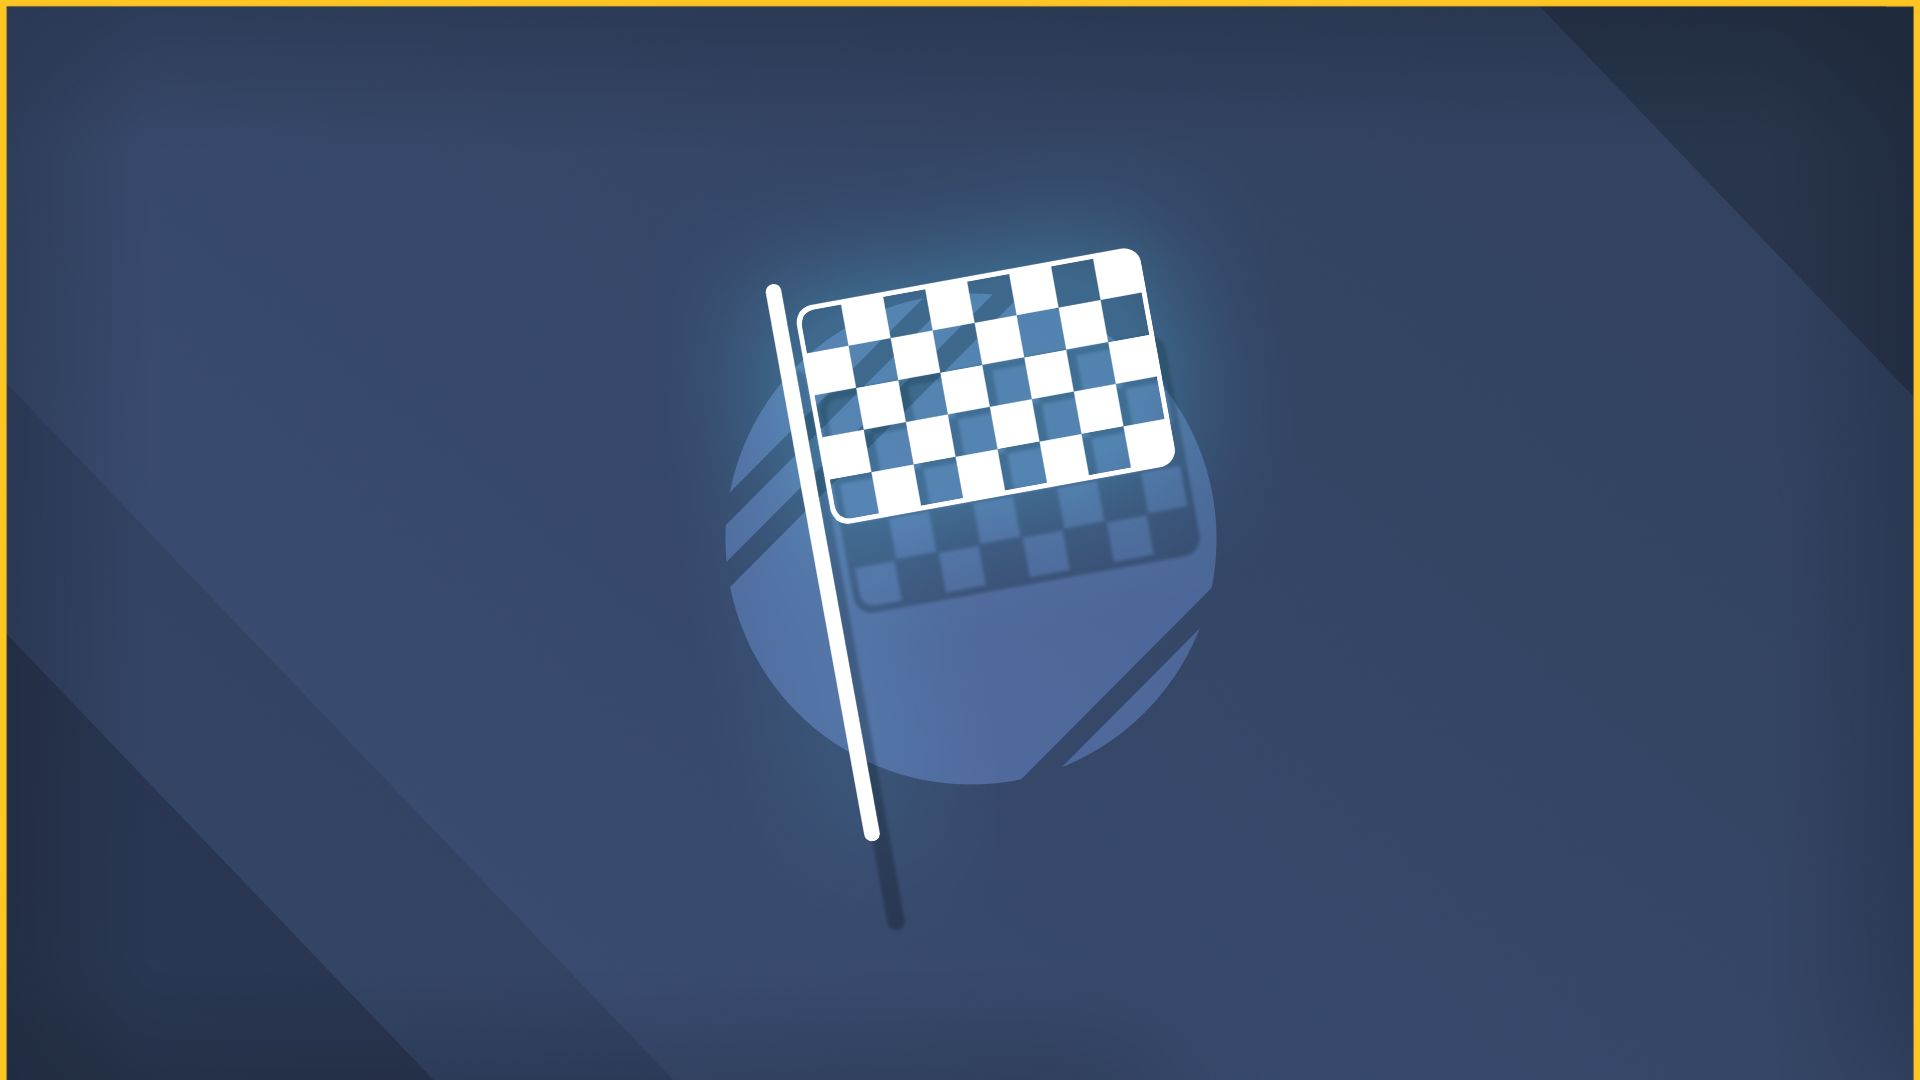 Icon for Pole sitter